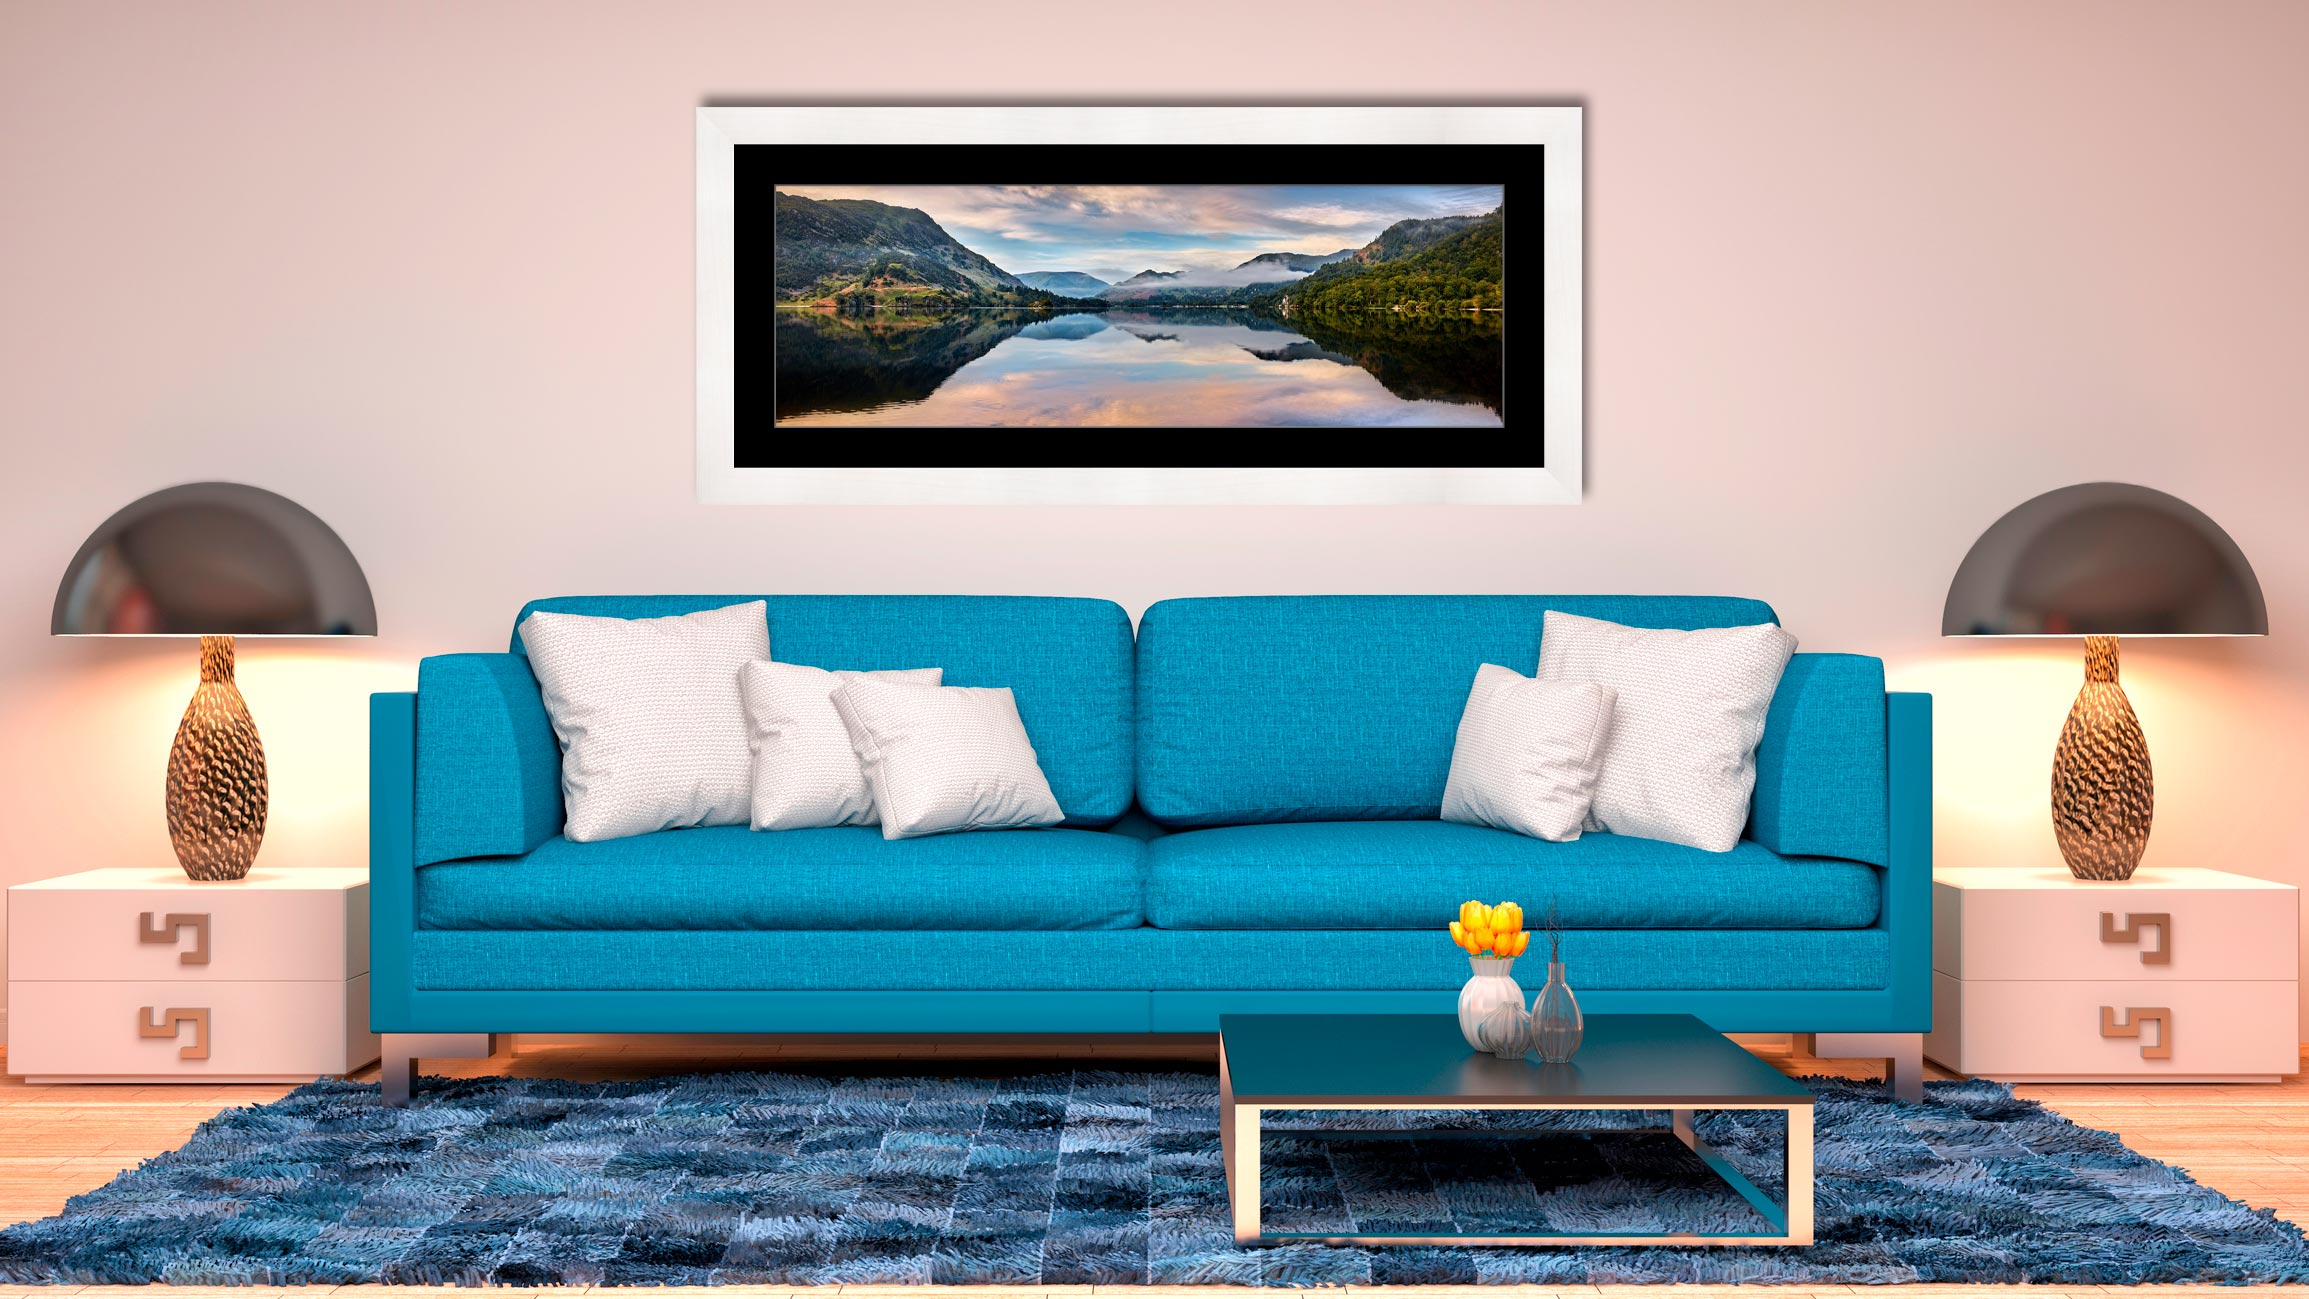 Ullswater Calmness - Framed Print with Mount on Wall